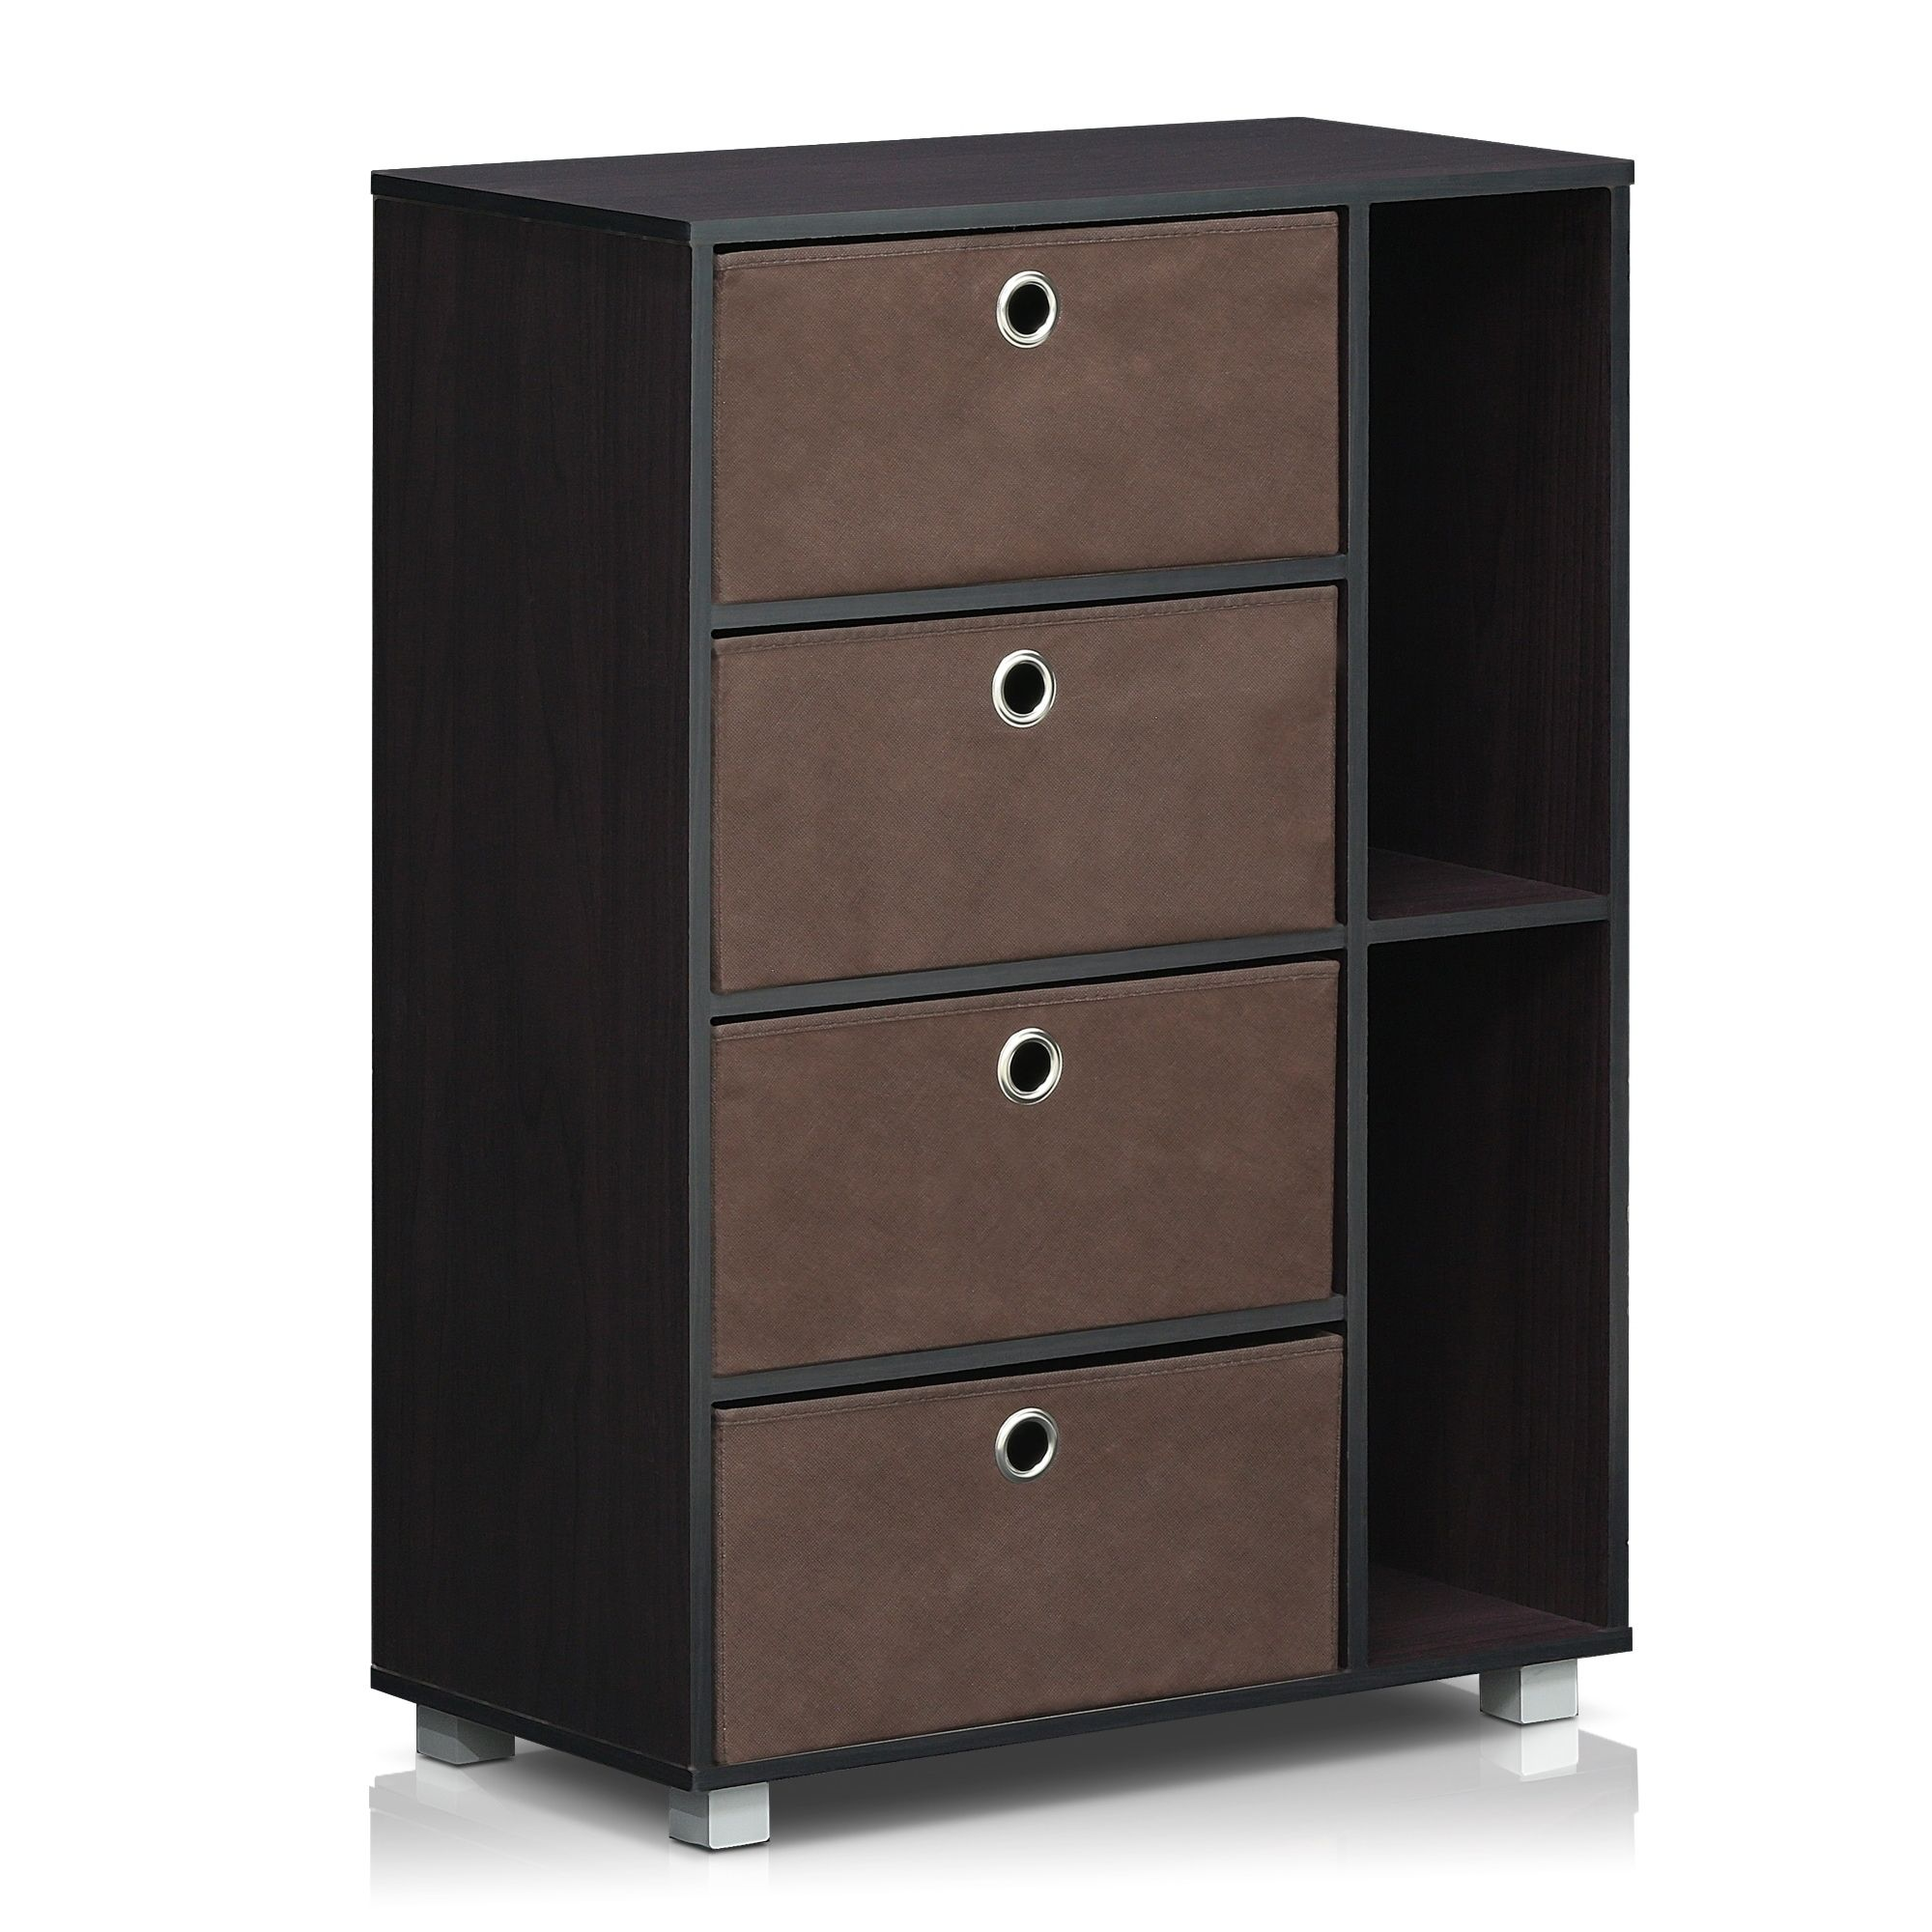 Furinno Espresso Brown Multi purpose 4 Bin type Drawer Storage